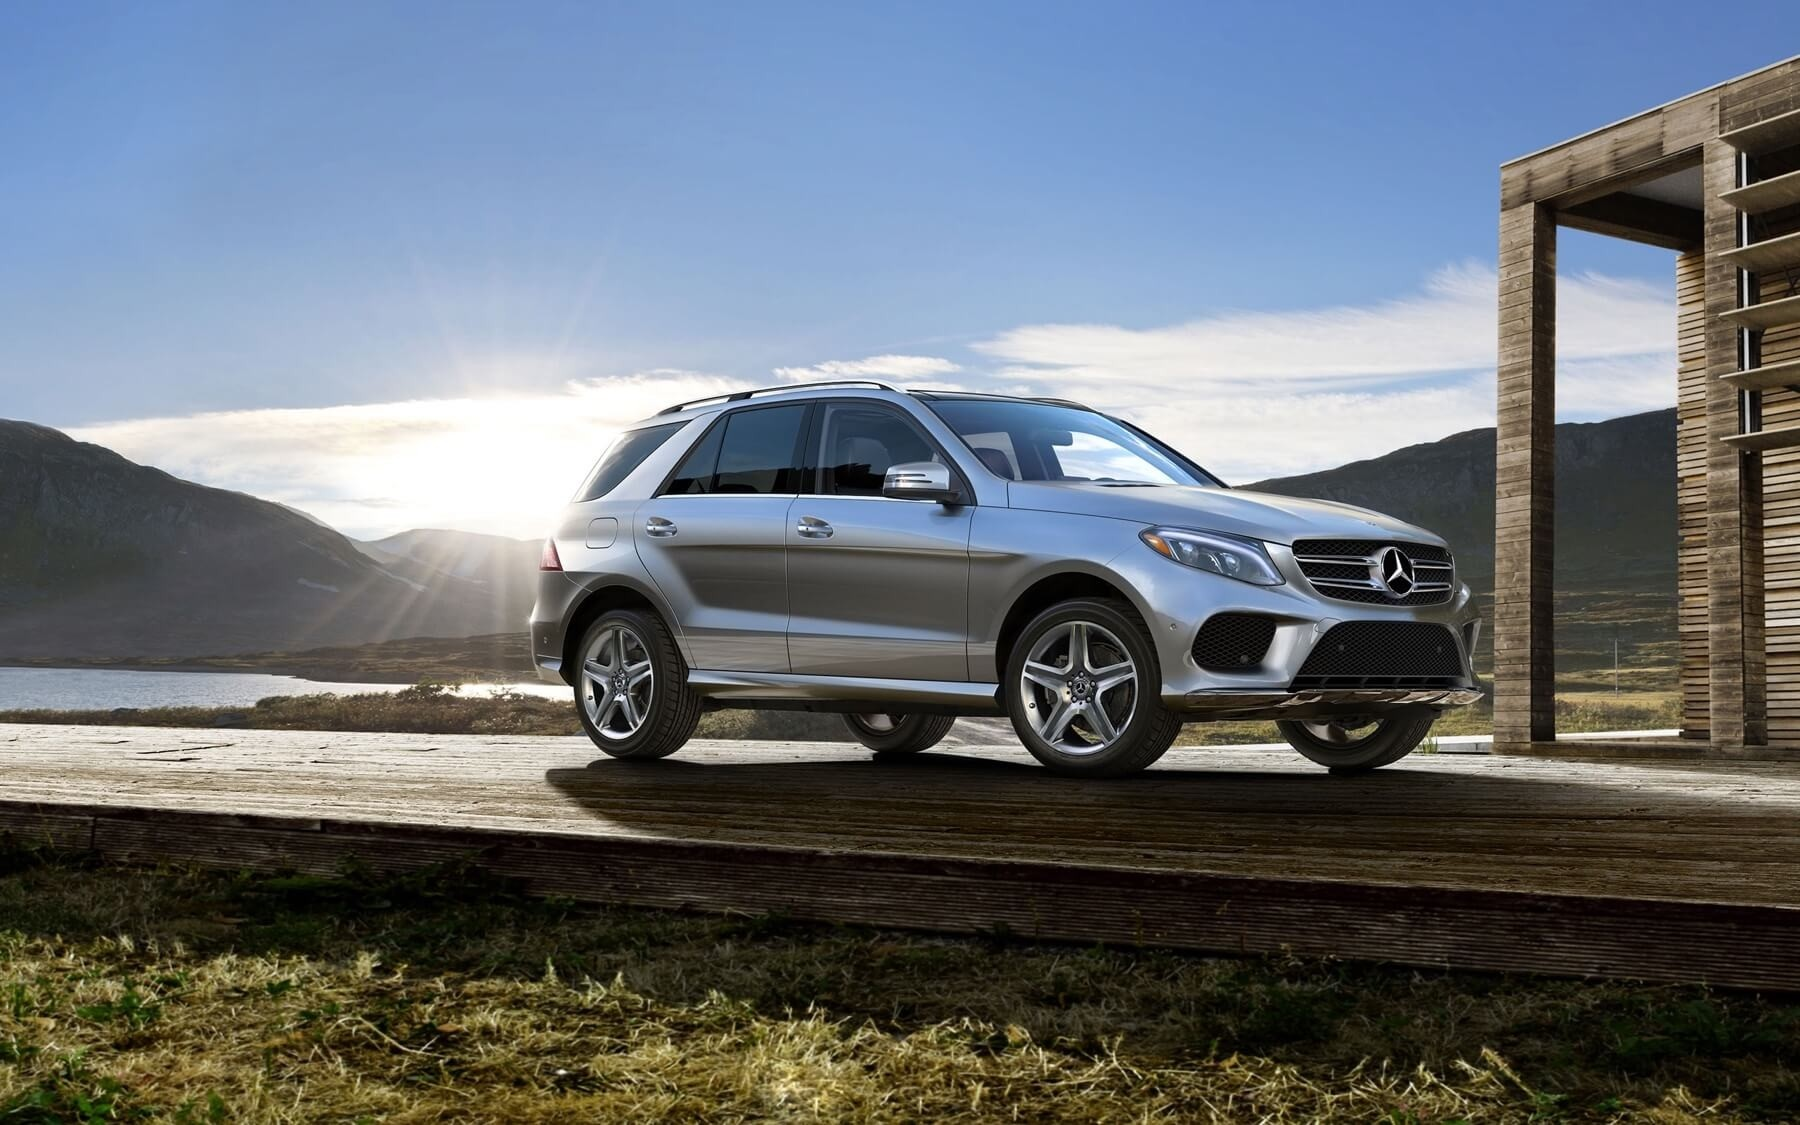 2018 Mercedes-Benz GLE SUV on the road